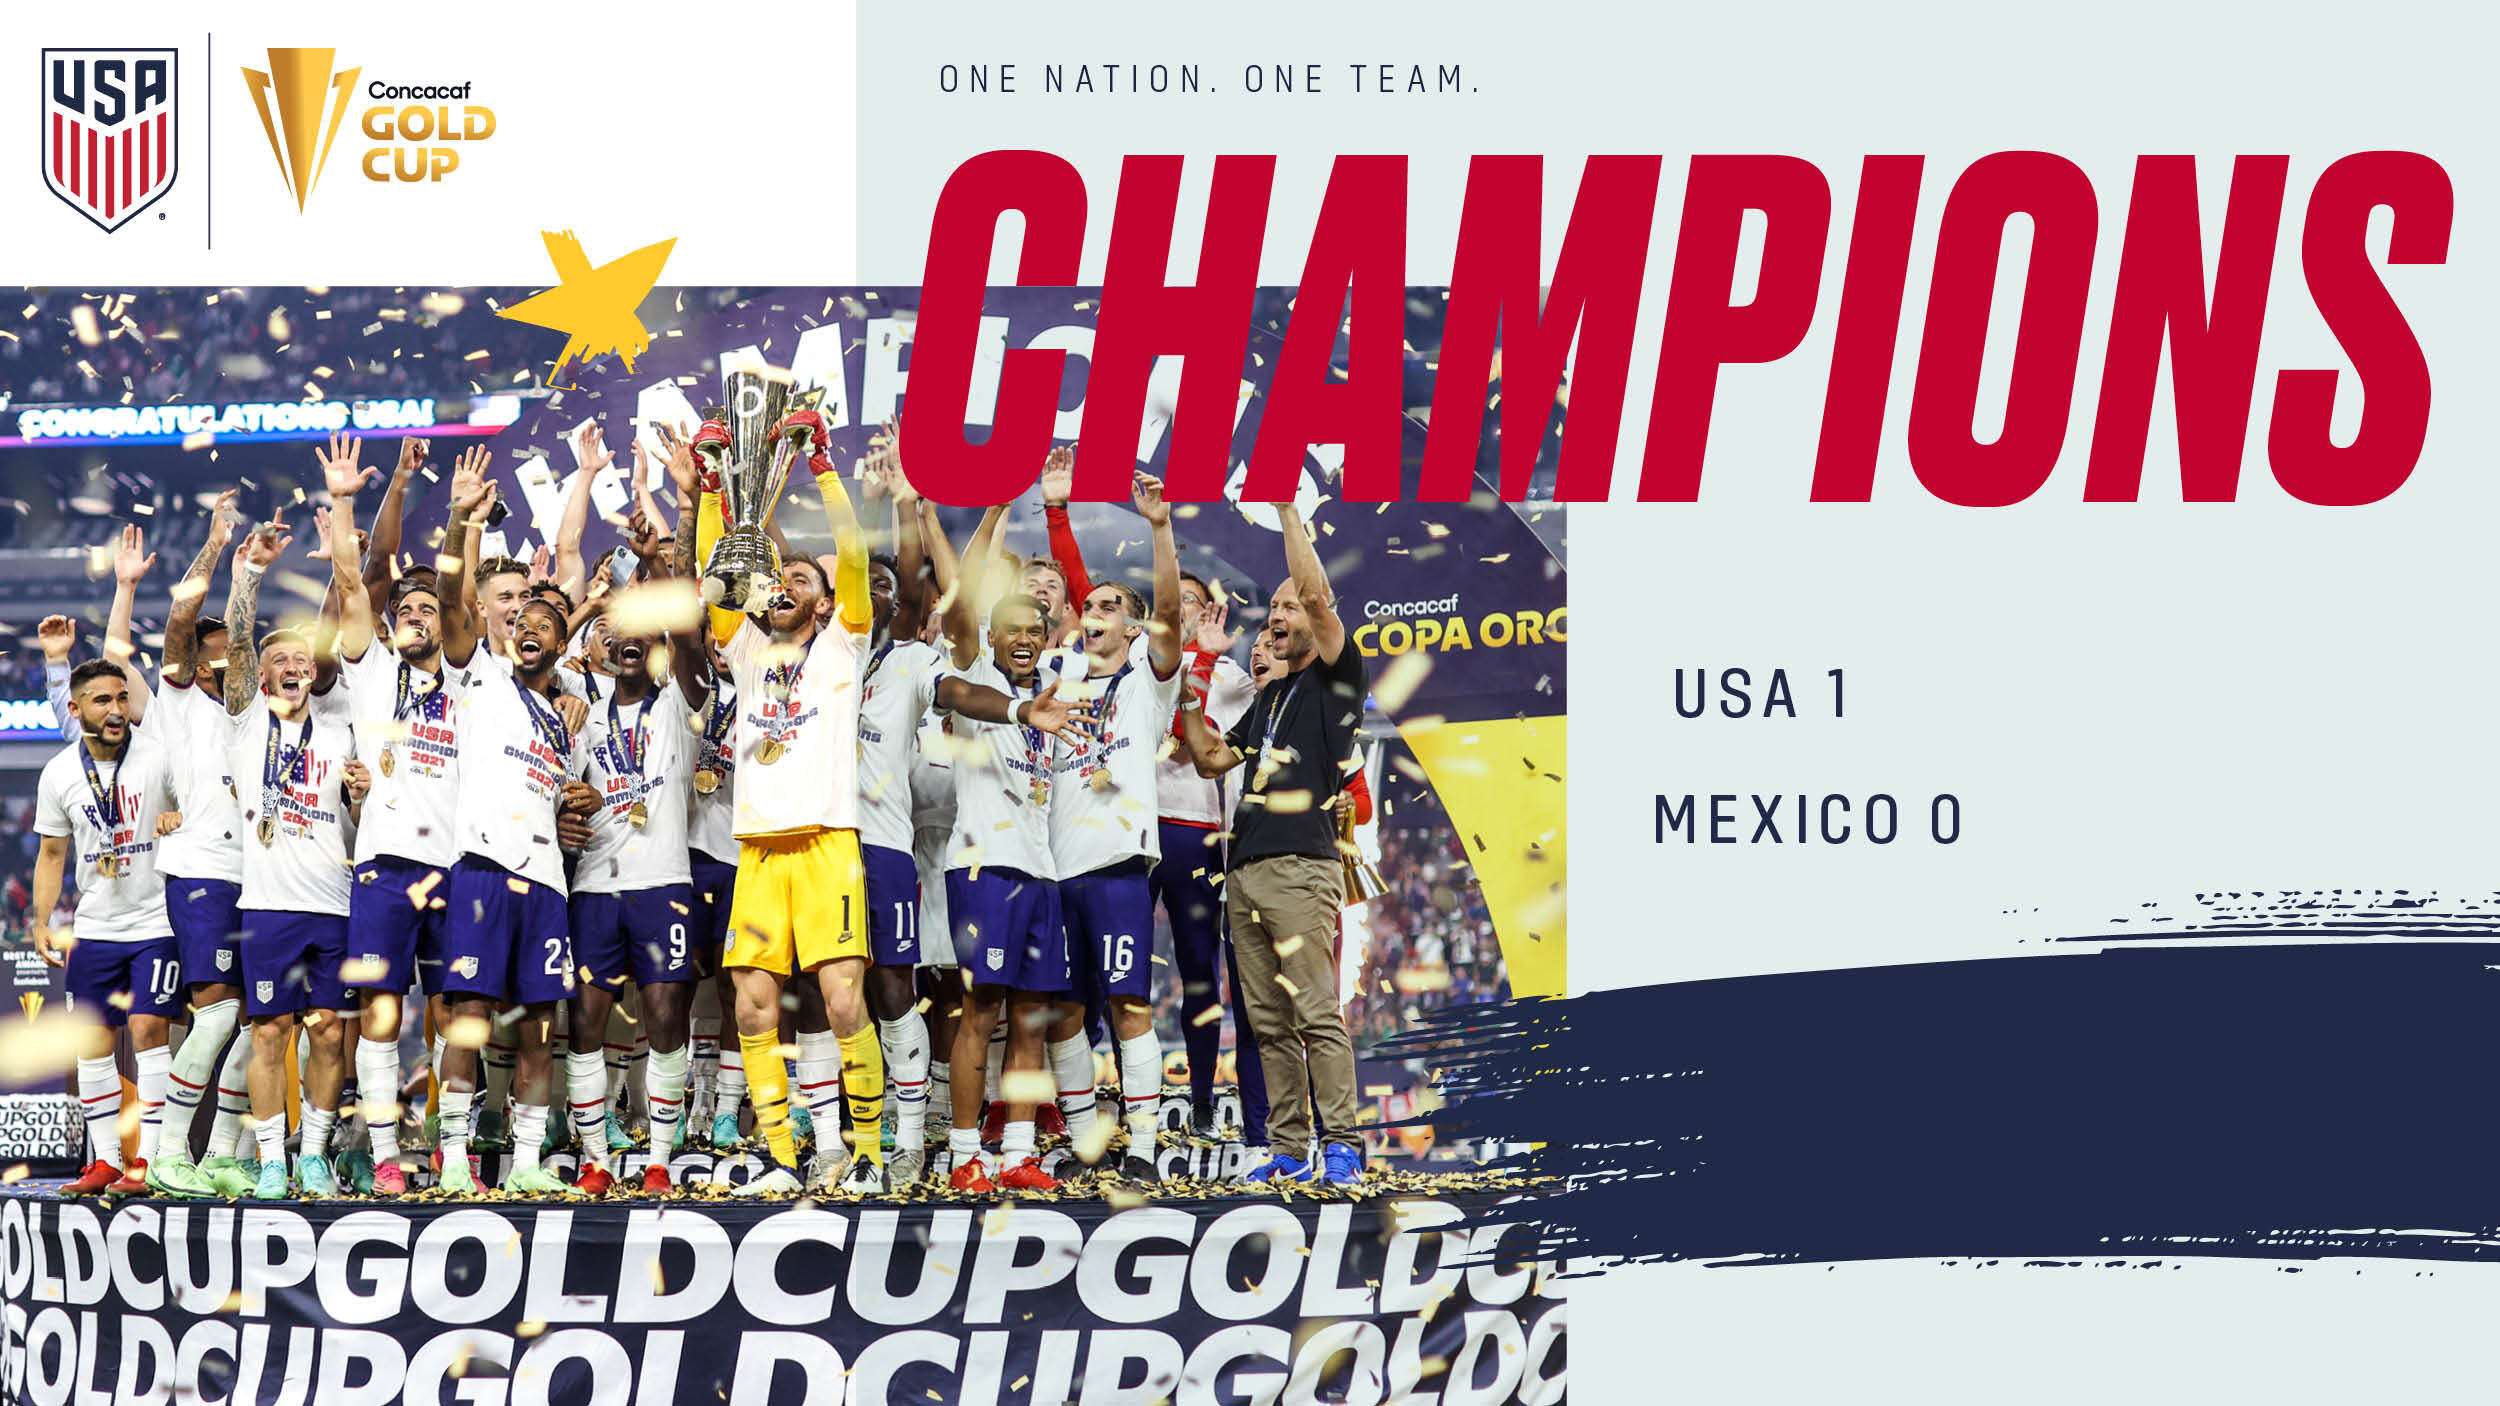 2021 Concacaf Gold Cup Final: USA 1 - Mexico 0   Match Report, Stats & Bracket